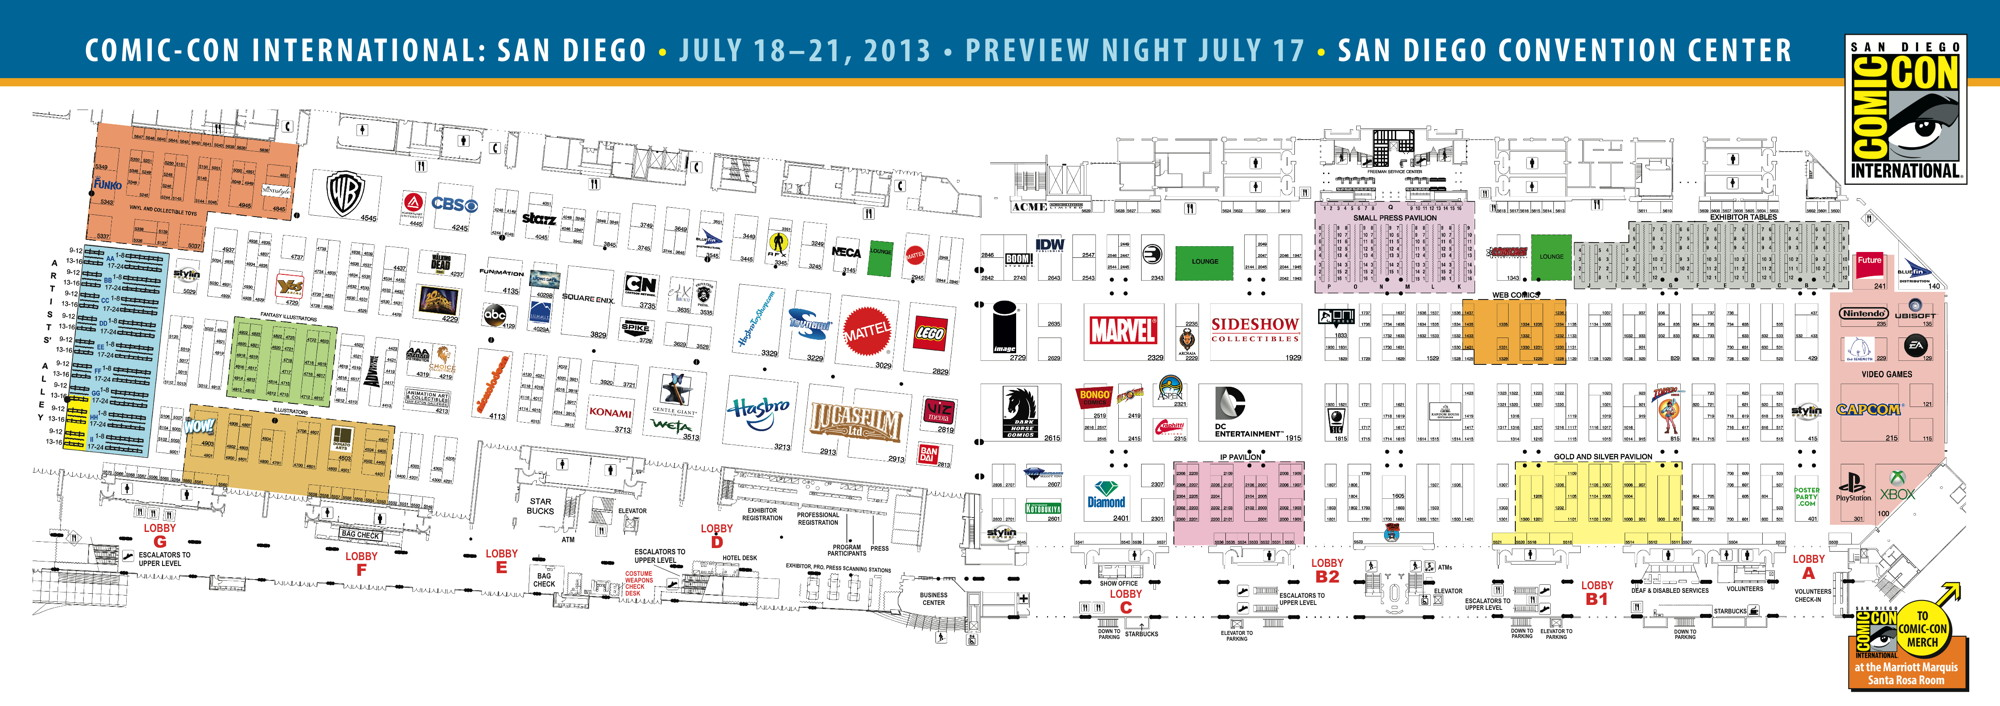 SDCC '13: The Map is here! - The Beat Sdcc Map on halloween map, otakon map, pax map, thundercats map, transformers map, convention map, sandman map, the dark knight map, tron map, thanksgiving map, tmnt map, black widow map, avengers map, spiderman map,